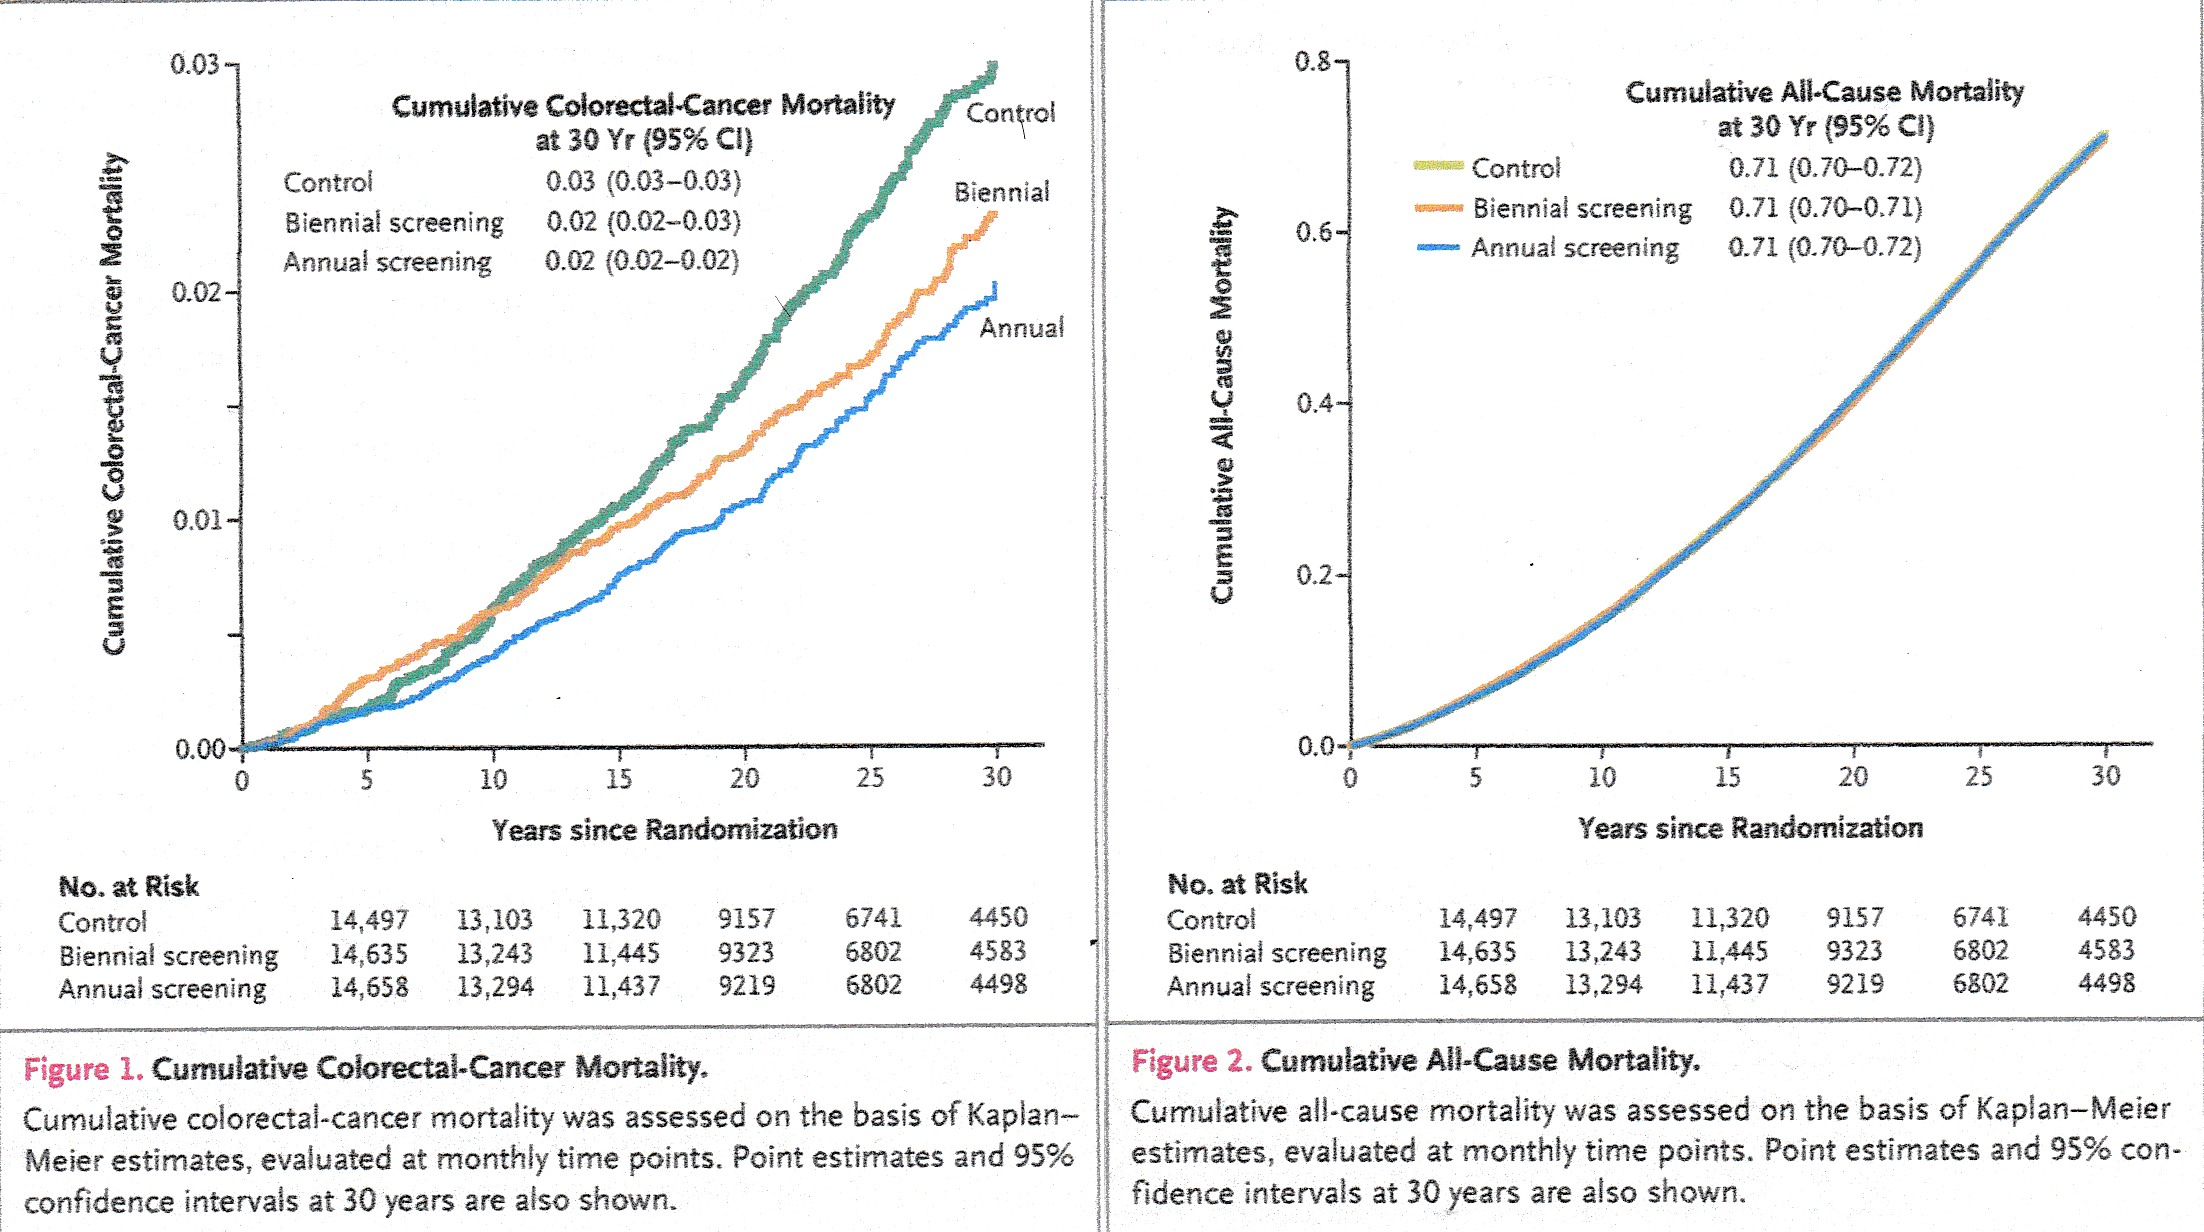 Results from the Minnesota Colon Cancer Control Study, a 46,551 patient cohort followed for 30 years. Colorectal cancer mortality and all-cause mortality with and without screening for fecal occult blood (see reference 5).